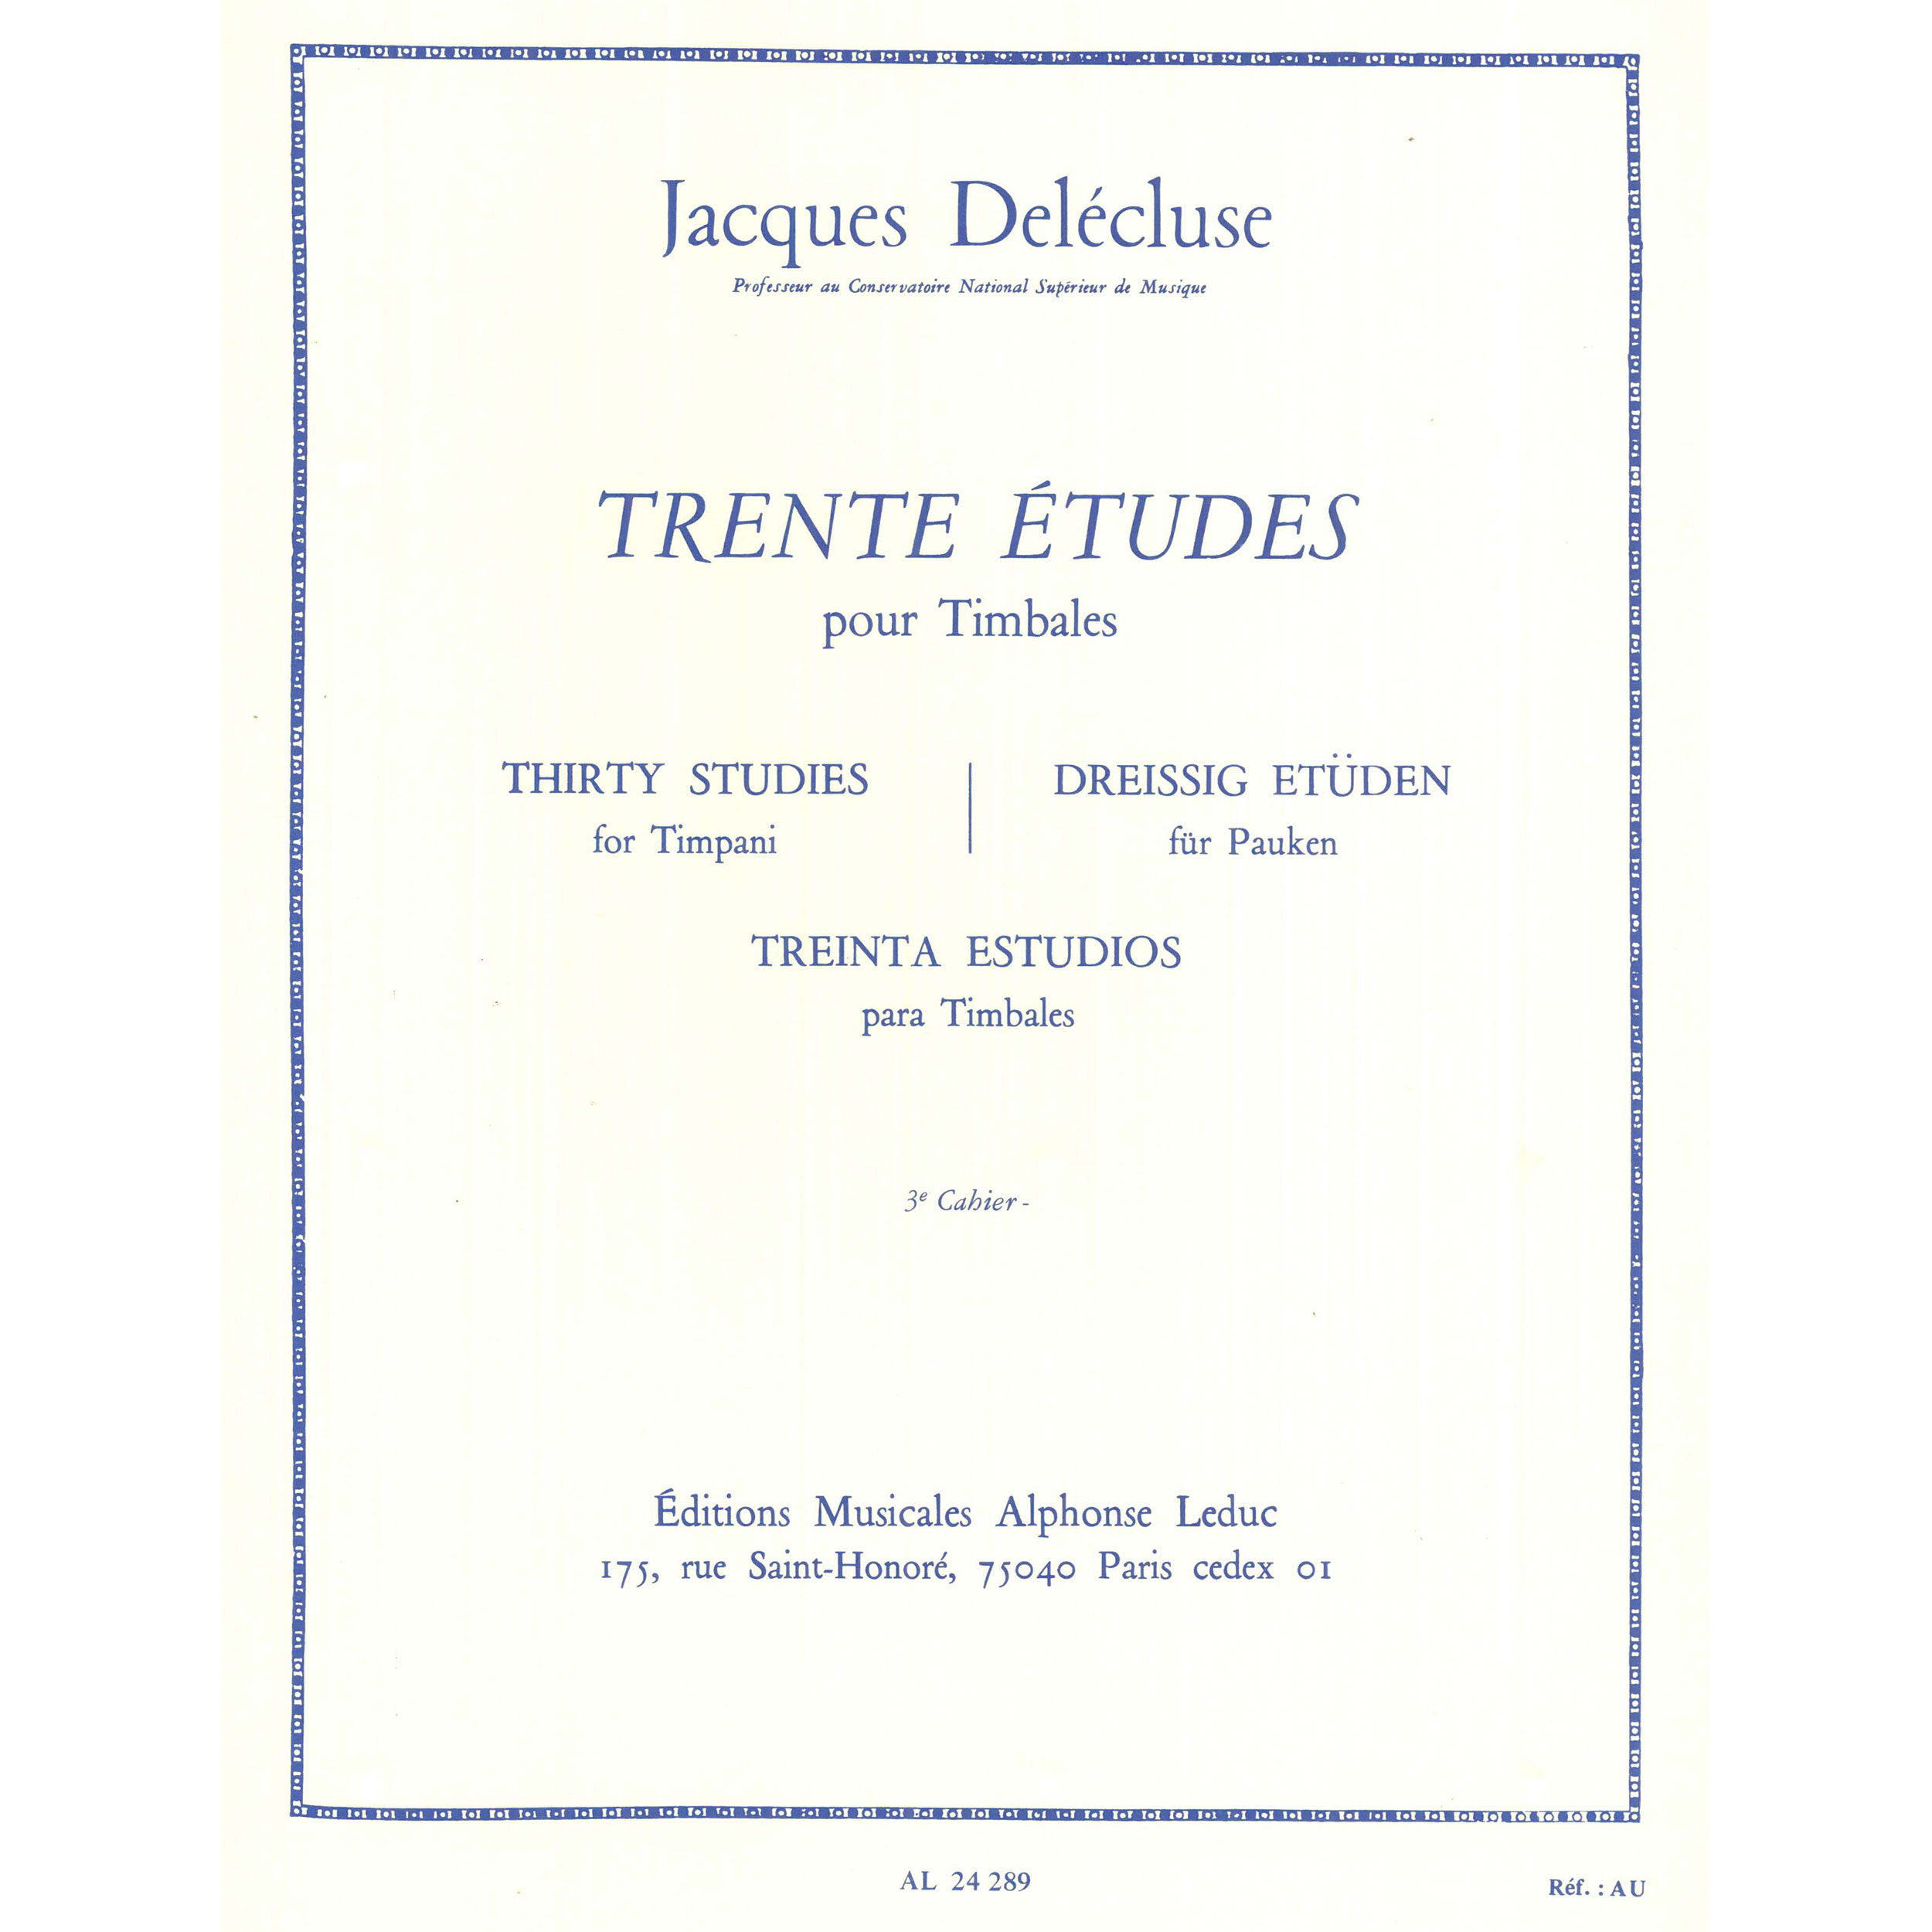 Trente Etudes pour Timbales (Thirty Etudes for Timpani) Book 3 by Jacques Delecluse